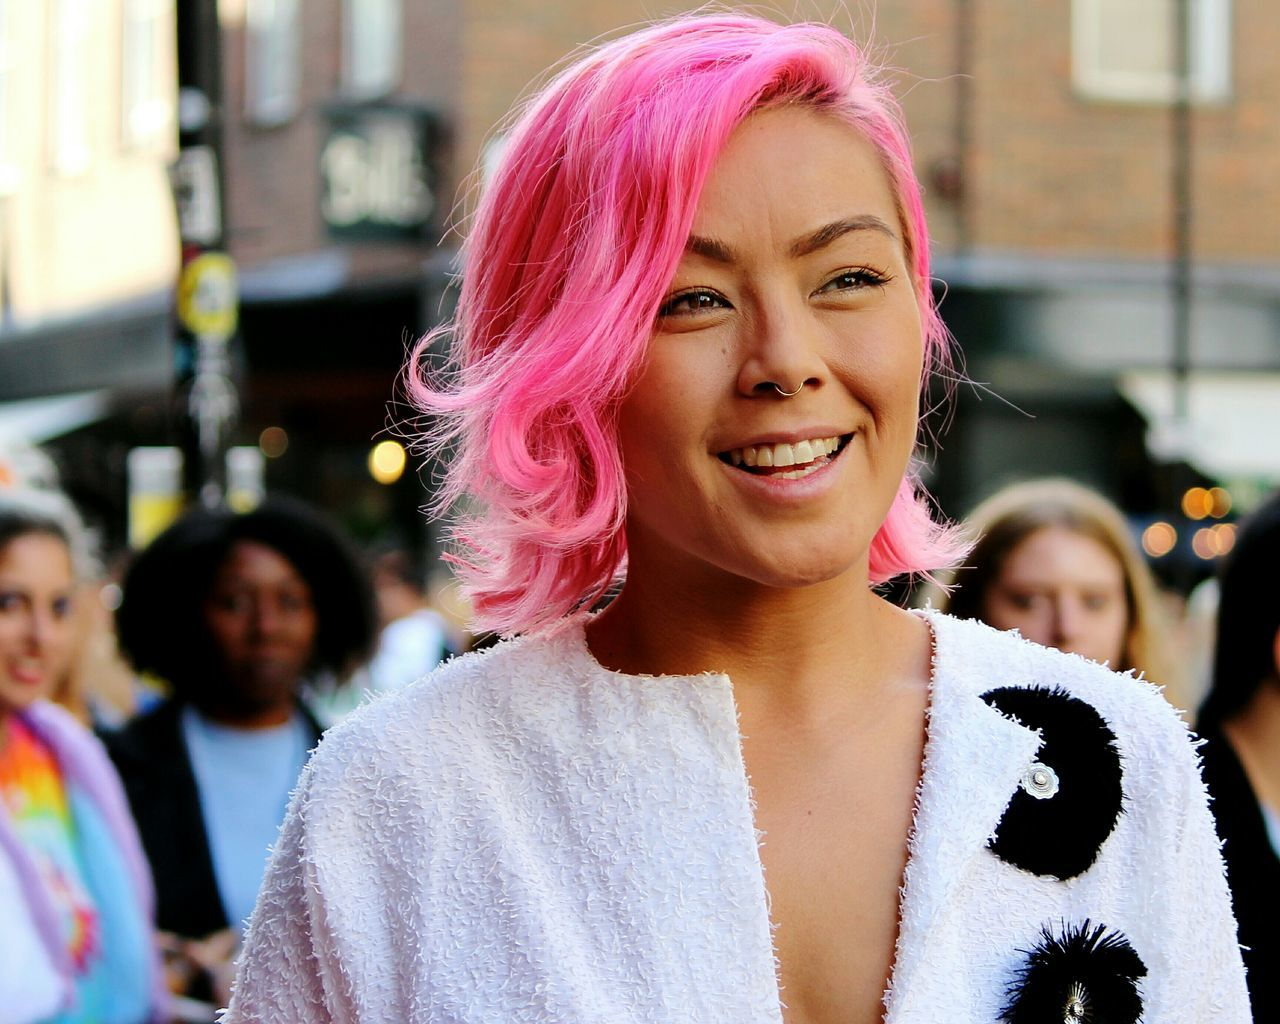 PORTRAIT OF HAPPY YOUNG WOMAN WITH PINK HAIR